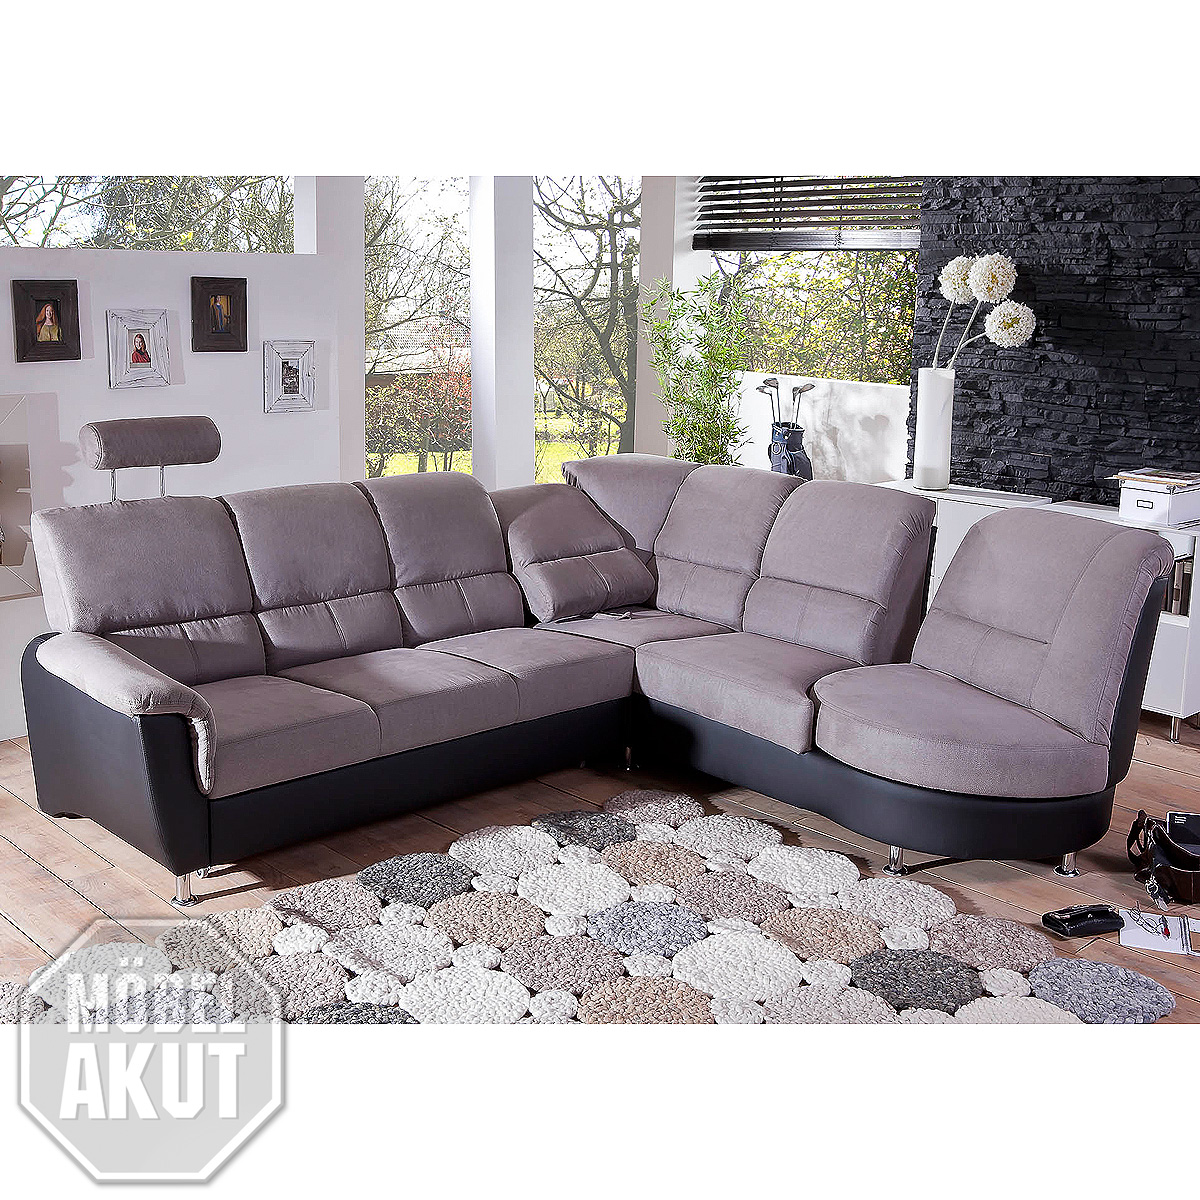 ecksofa pisa eckgarnitur sofa in grau schwarz mit. Black Bedroom Furniture Sets. Home Design Ideas